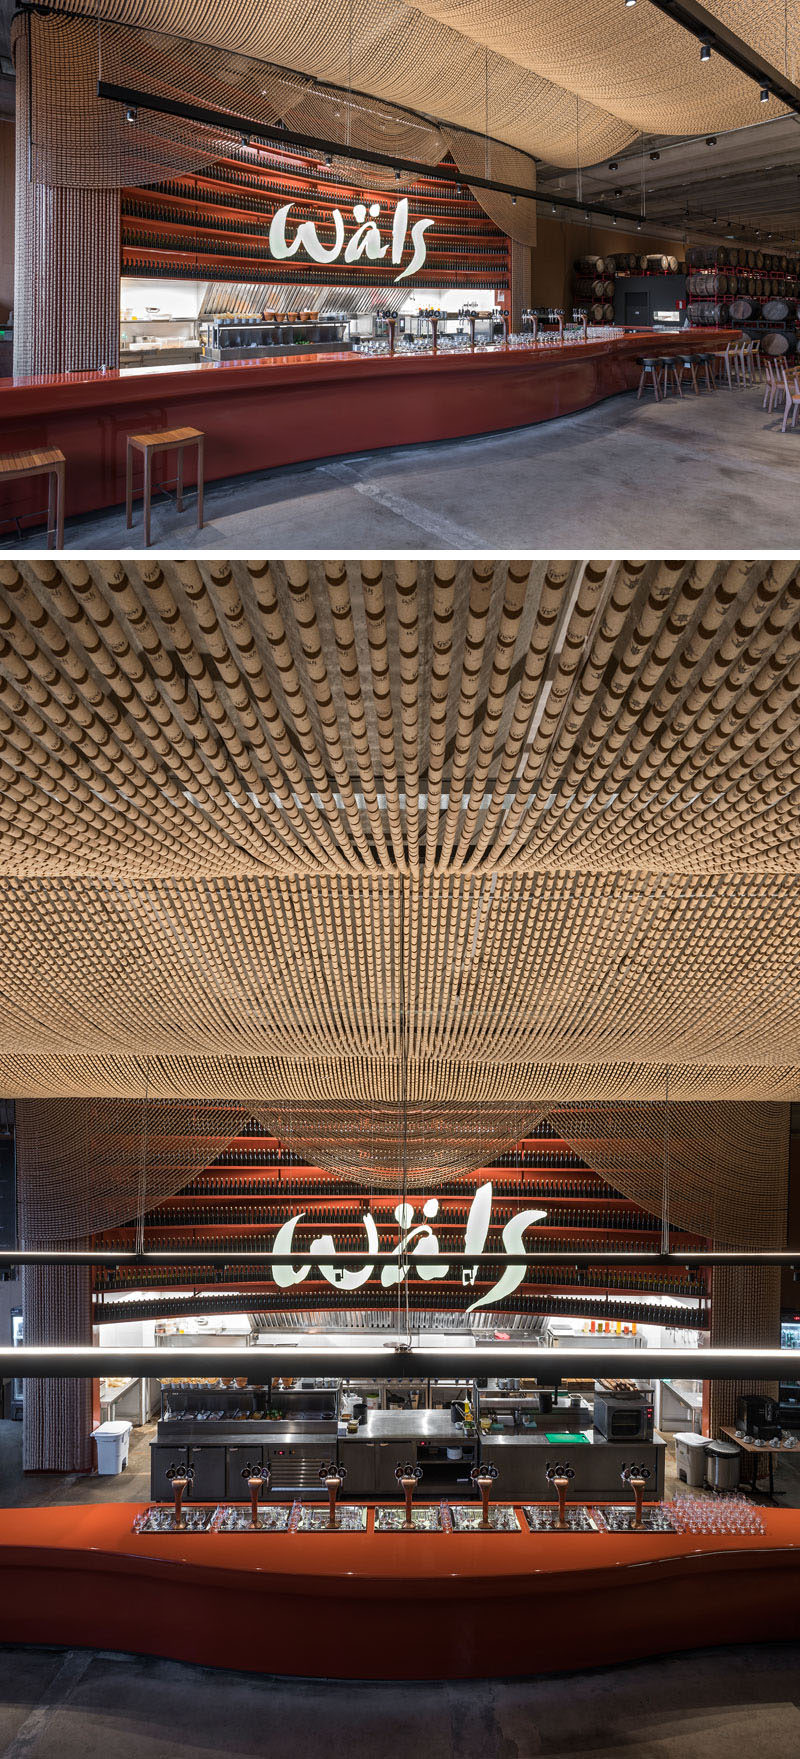 Inside this modern brewery, there's a bar area that's been designed as a reference to English-style India Pale Ale. Behind the bar is a large shelf full of bottles designed especially for the project, while above the bar, there's a large canopy made from 135,000 cork stoppers that create a theatrical appearance. #Brewery #RetailDesign #Bar #InteriorDesign